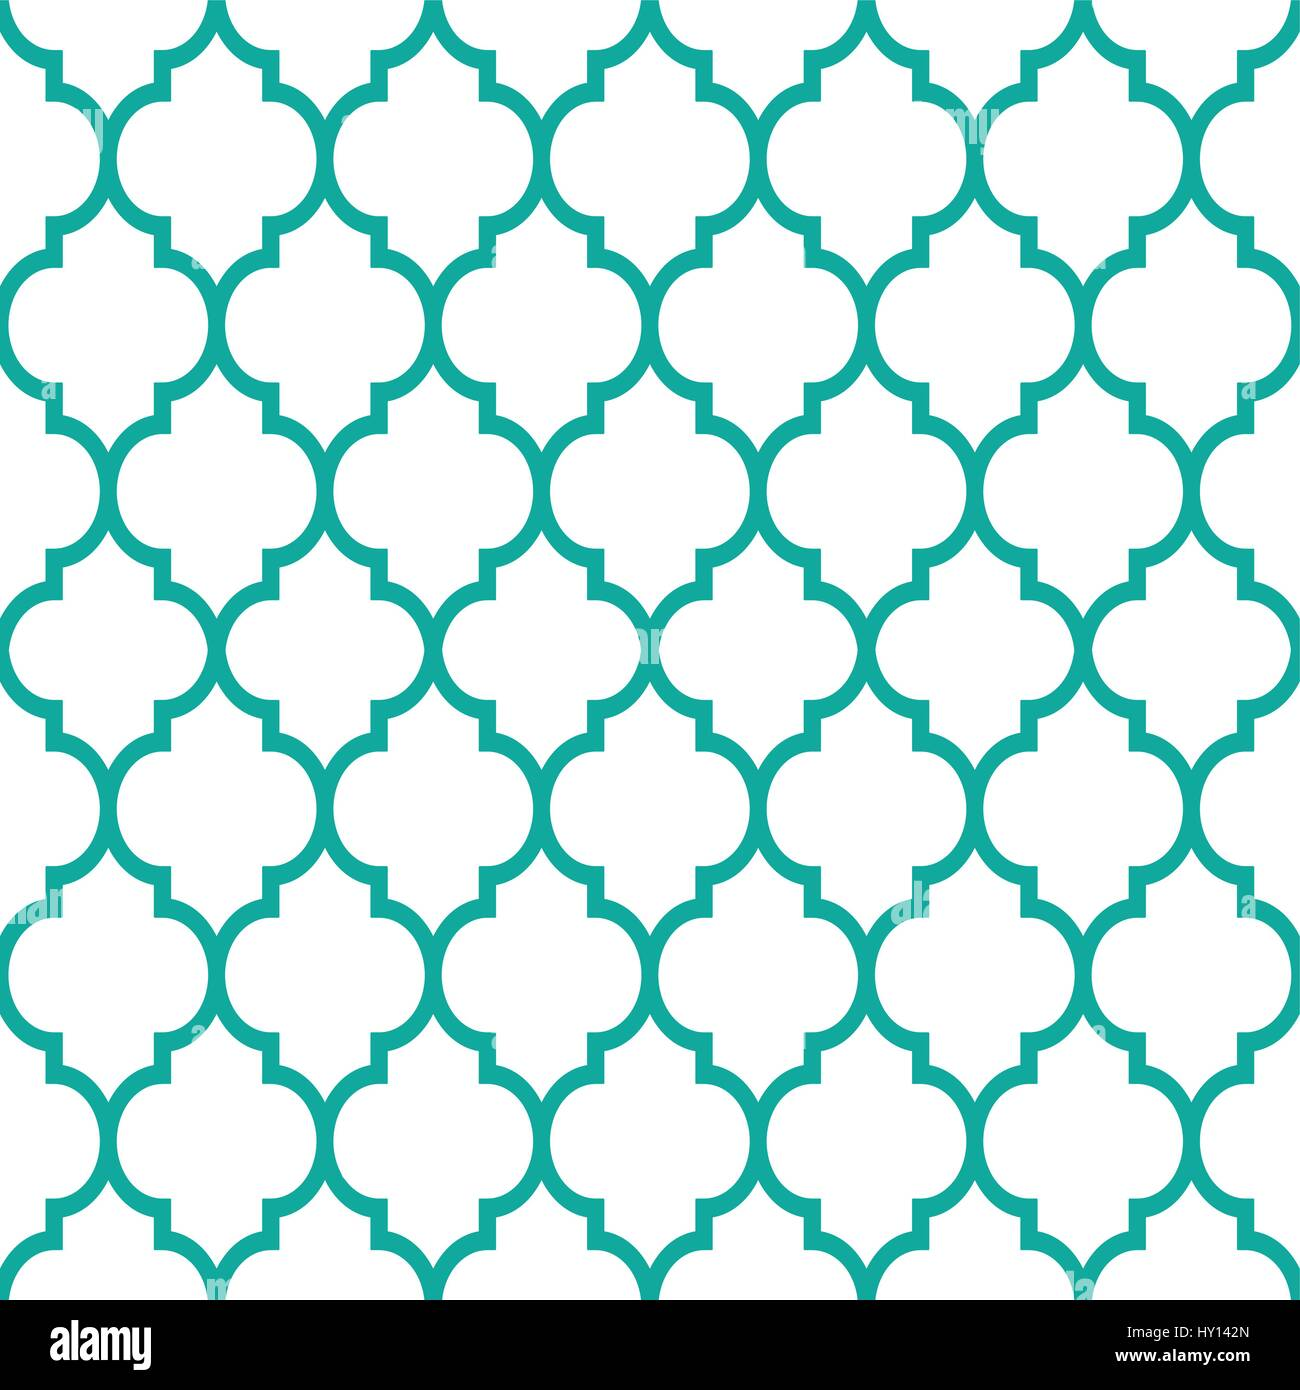 Vector of moroccan tile seamless pattern tile for design tile - Moroccan Tiles Design Seamless Turqoise Pattern Geometric Background